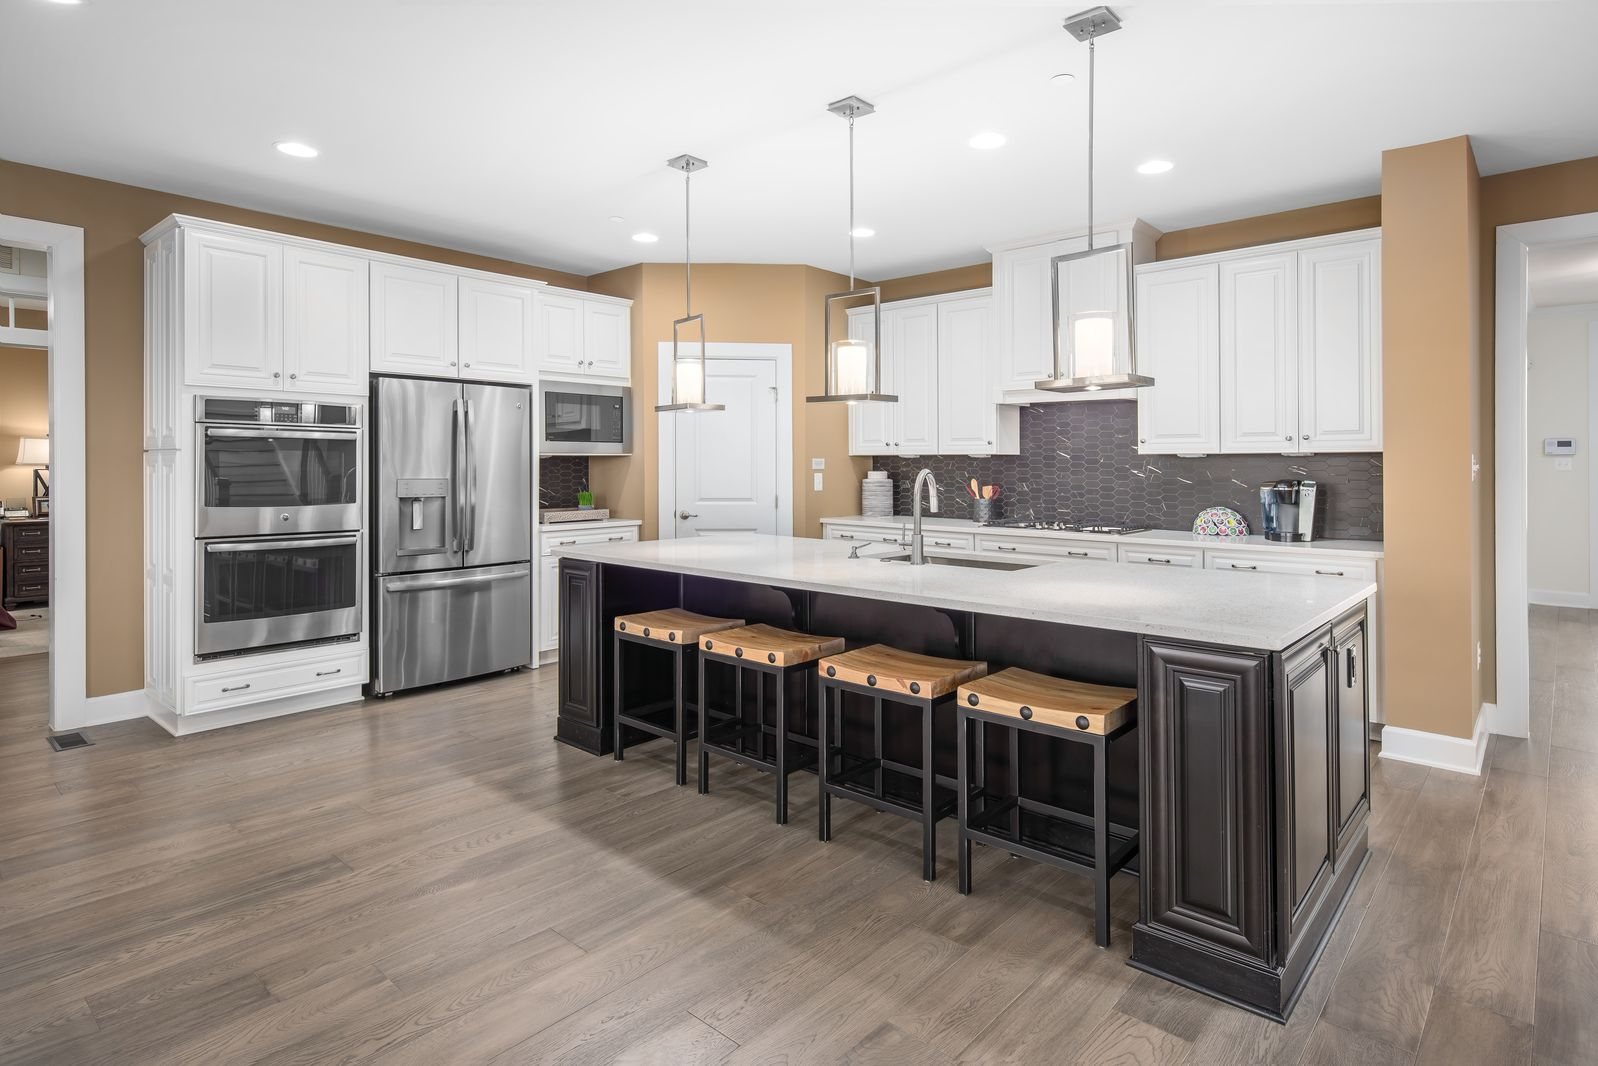 Kitchen-in-Marymount-at-Fairwood-in-Bowie